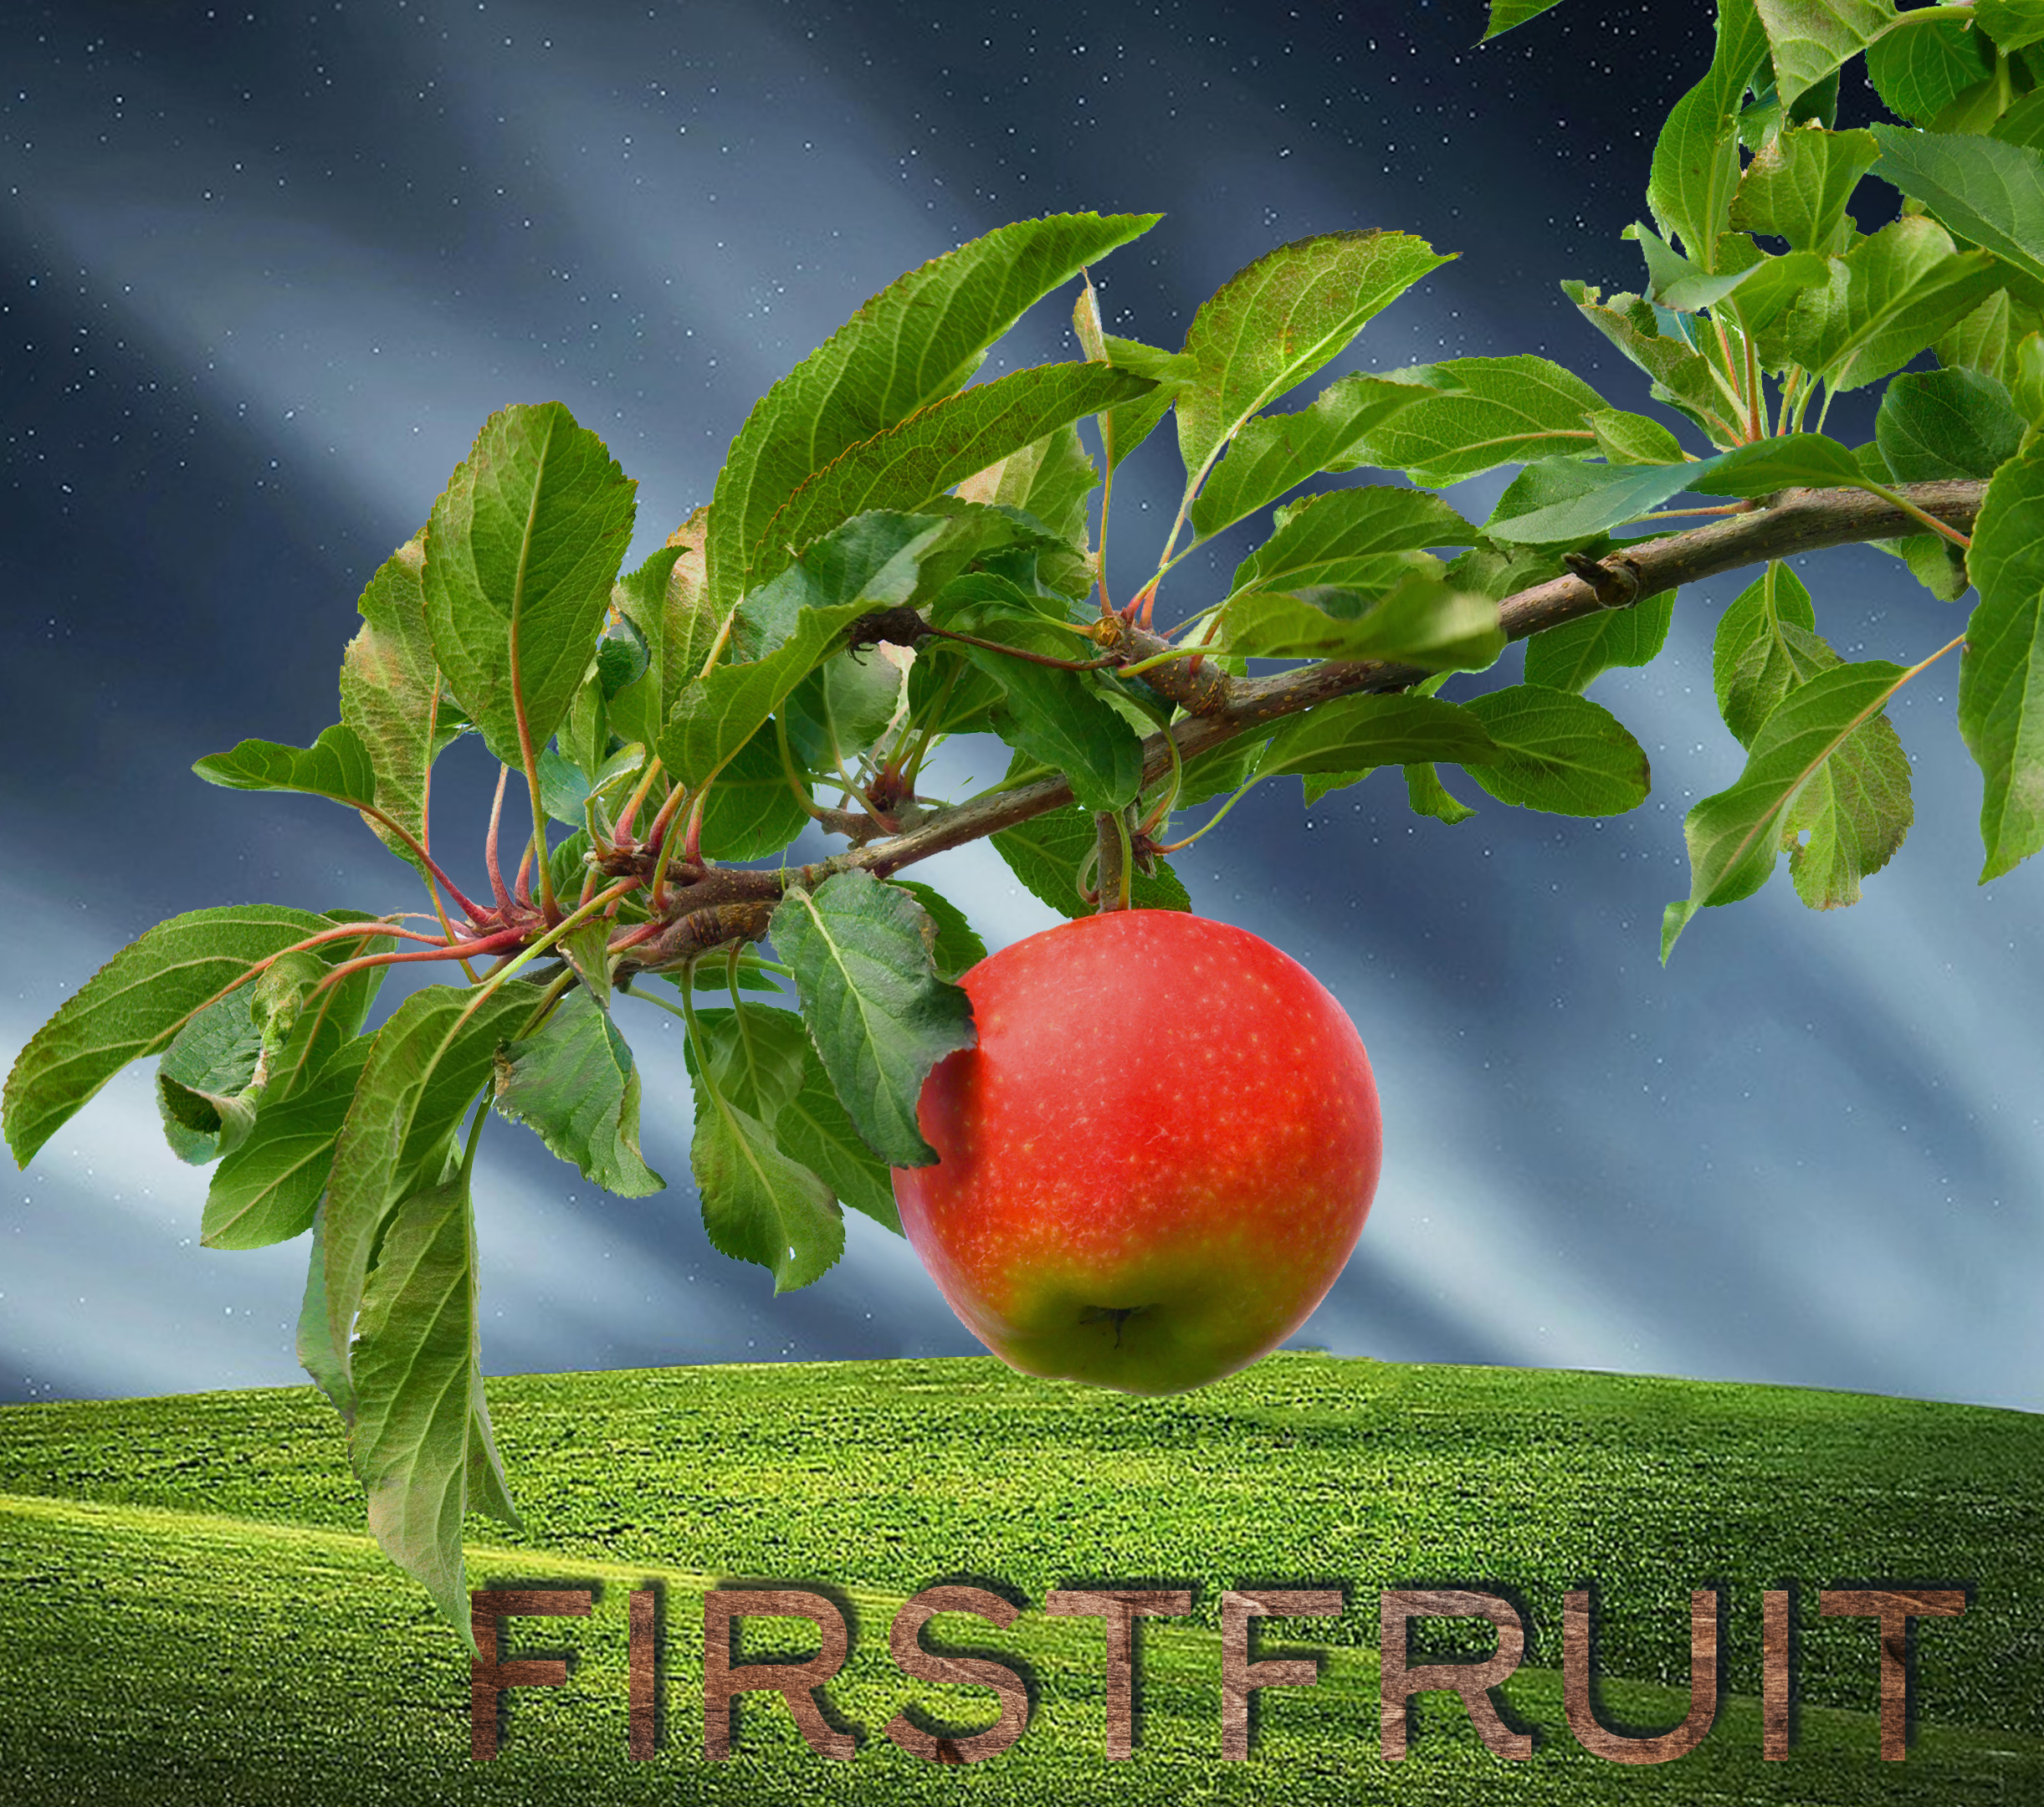 Firstfruit - Easter 2019